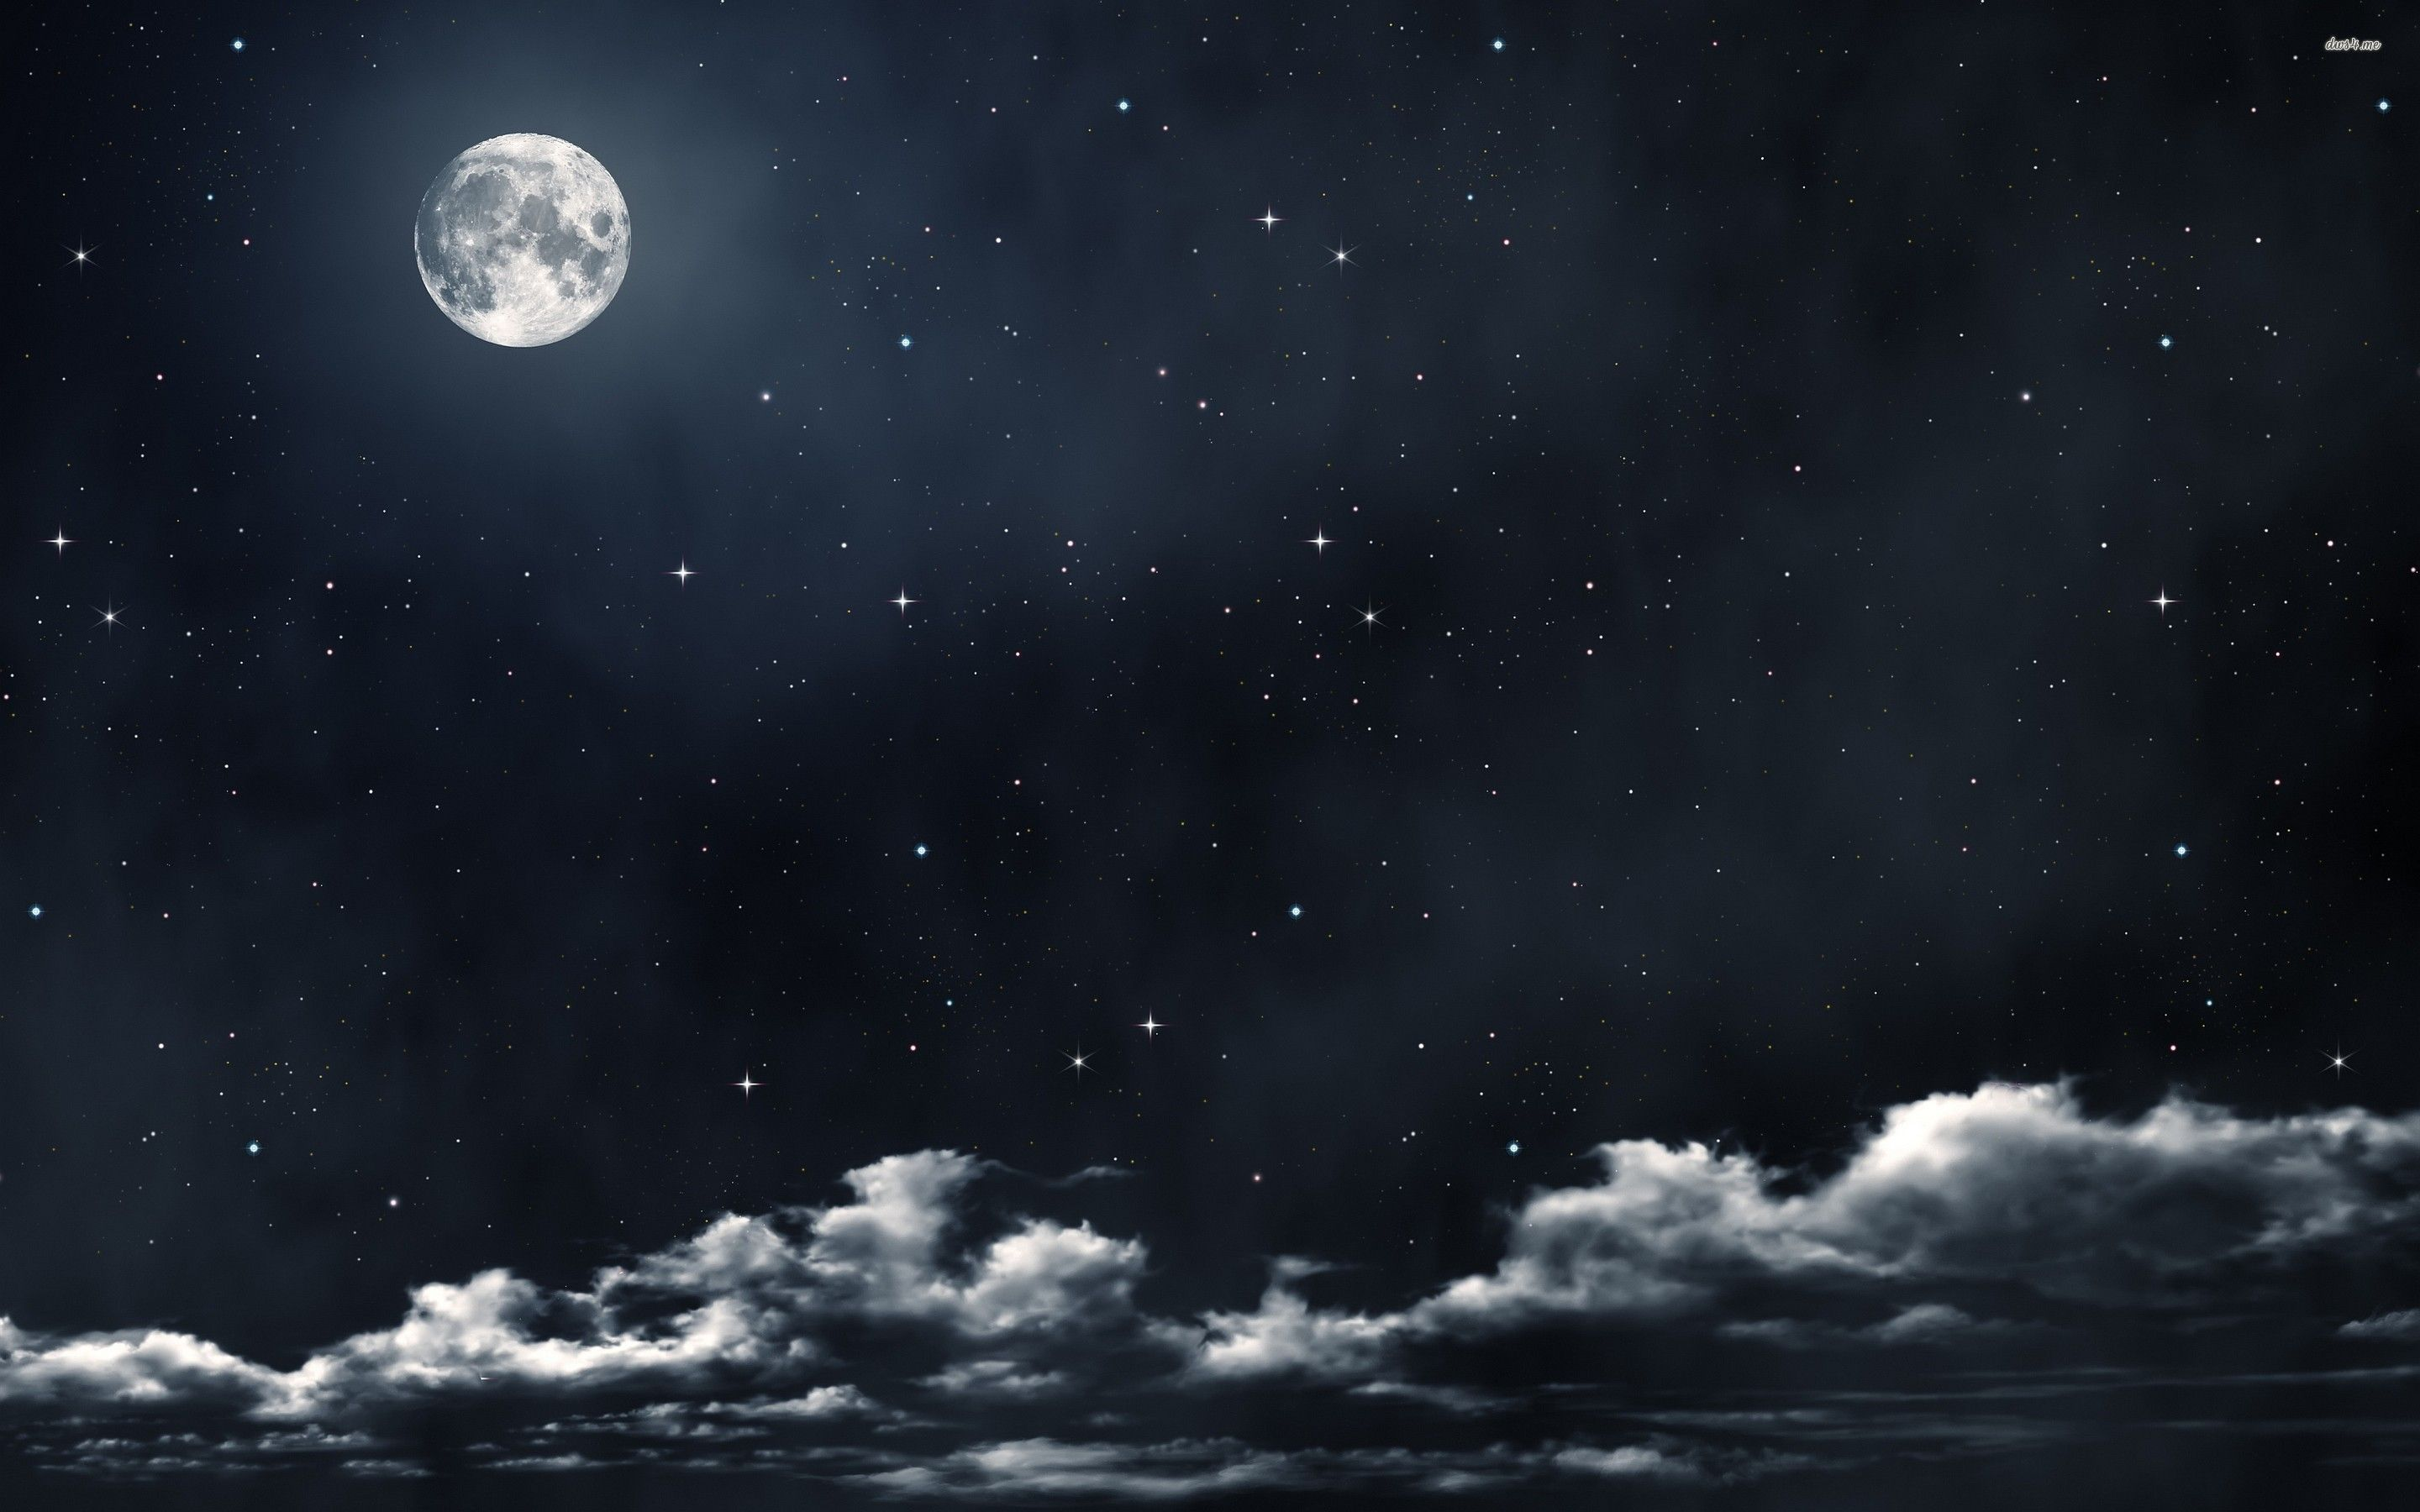 2880x1800 Pics Of Full Moon And Stars Dowload Download 3d Hd